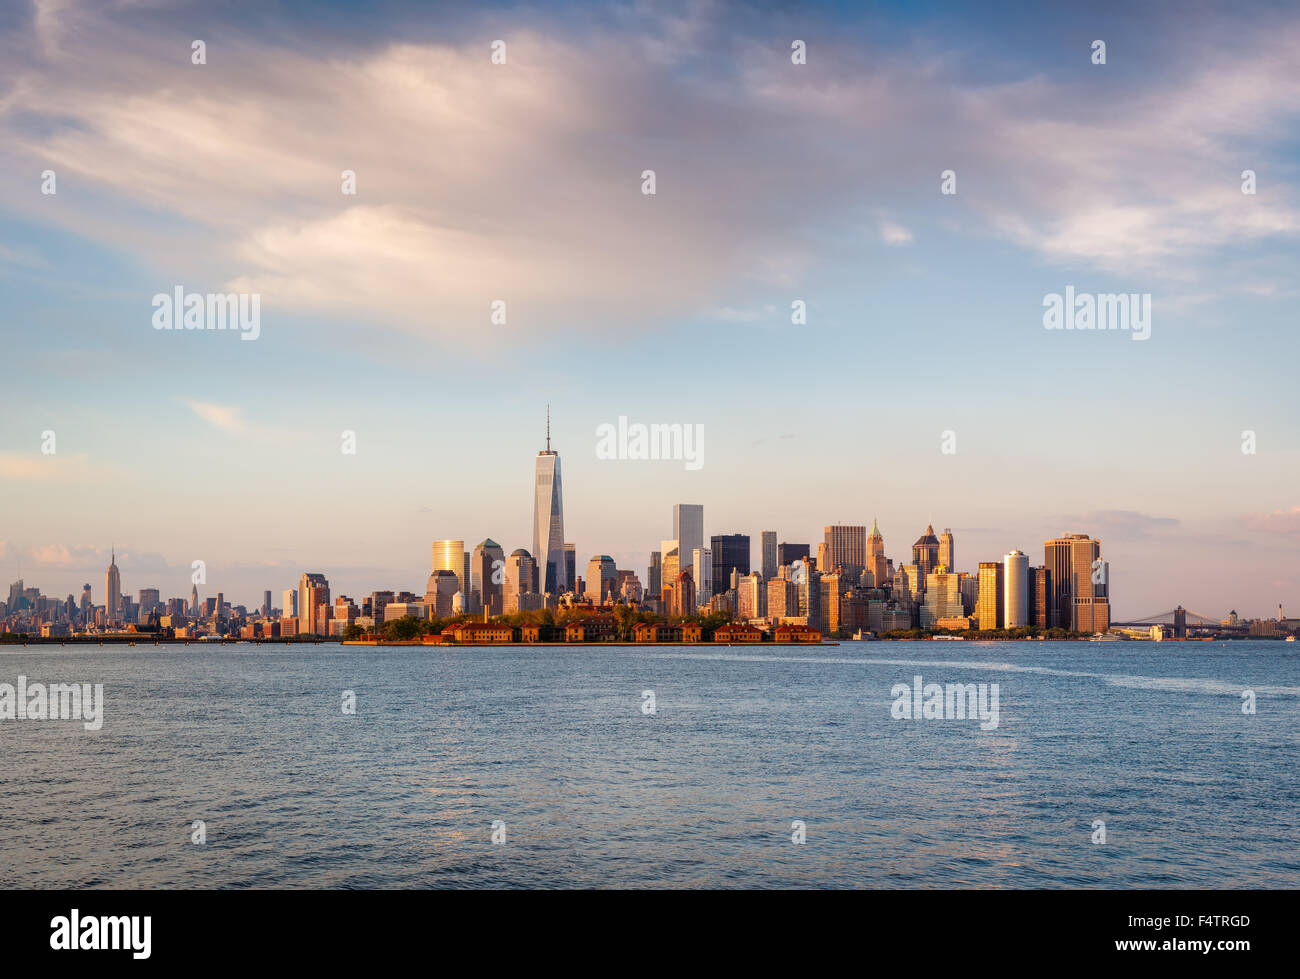 New York skyscrapers and Lower Manhattan's Financial District in sunset light with Battery Park and Ellis Island. - Stock Image